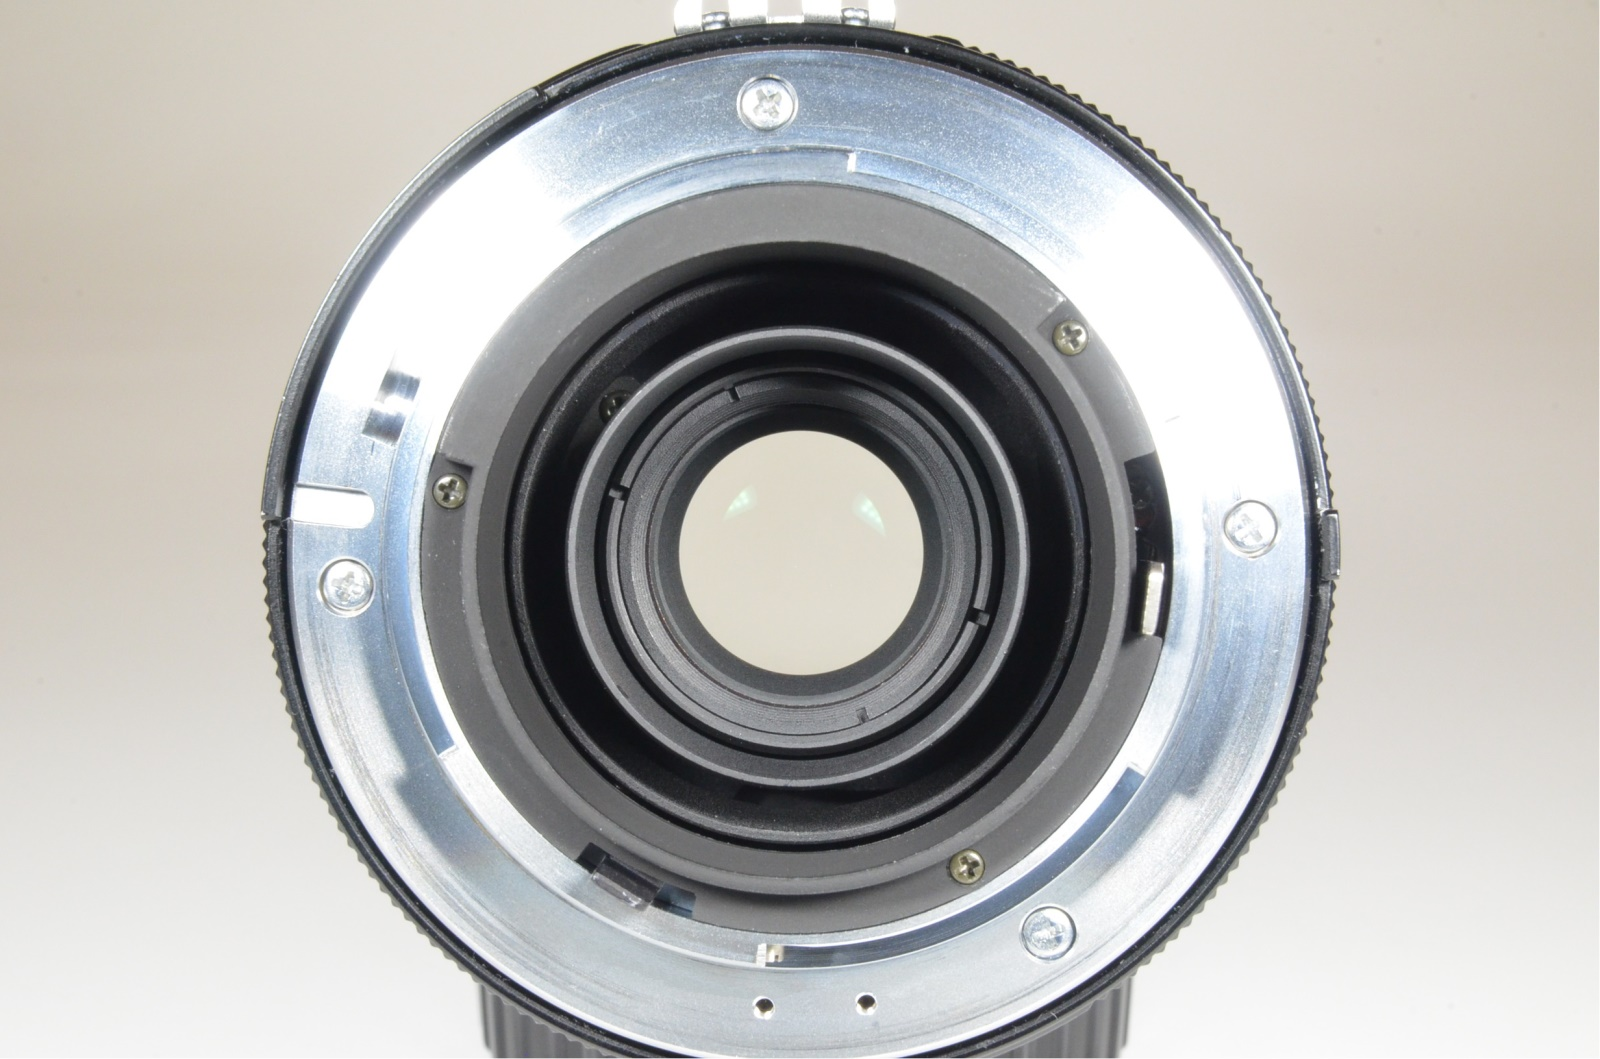 voigtlander apo-lanthar 180mm f4 sl for ai-s nikon recently cla'd by cosina